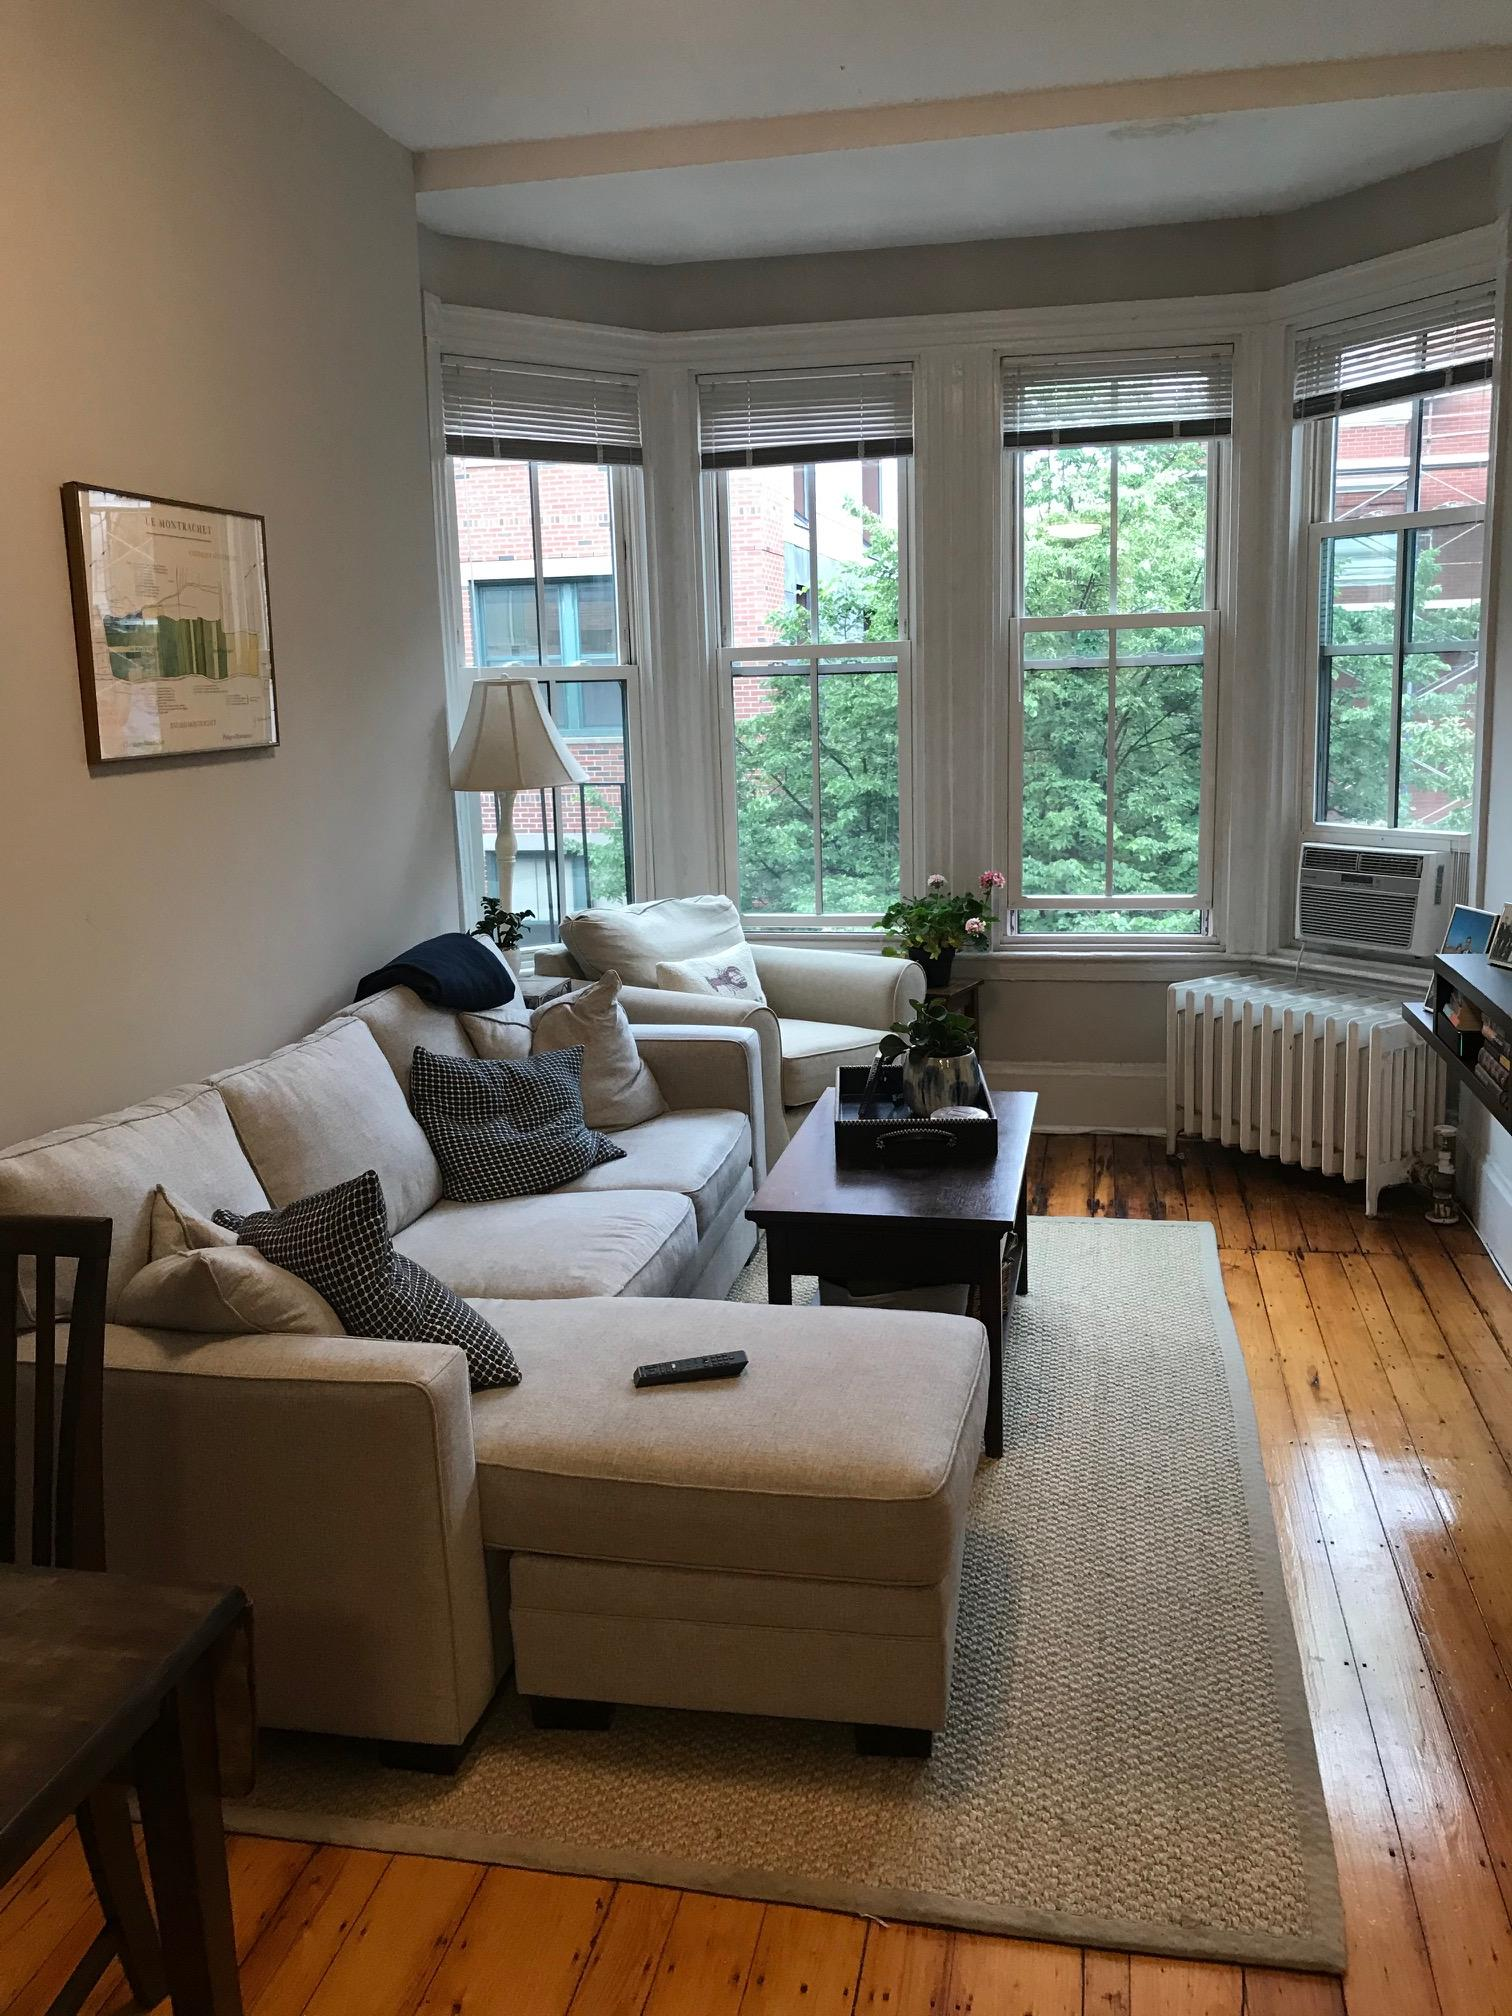 1 Bed, 1 Bath apartment in Boston, South End for $1,900